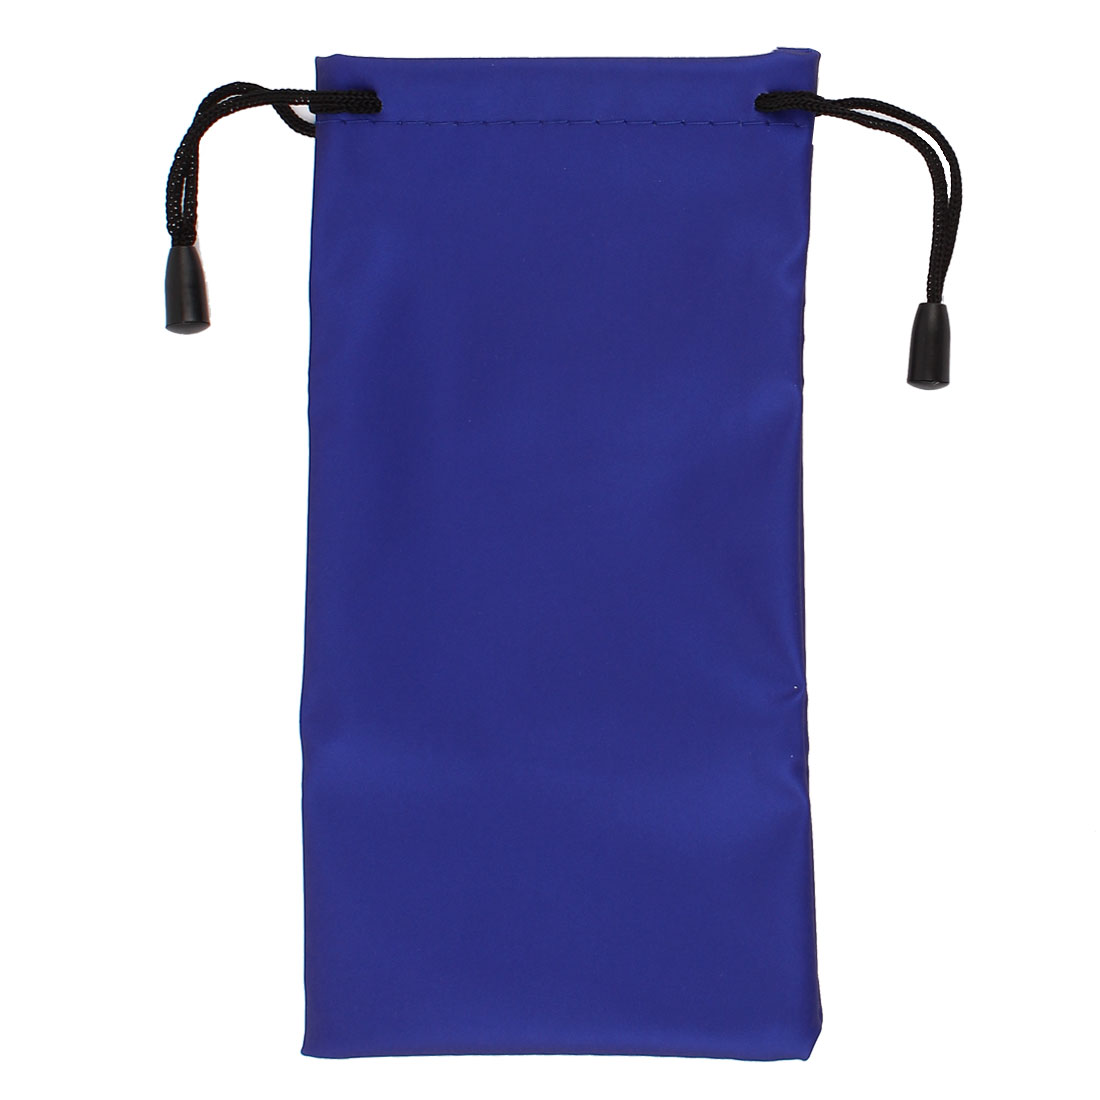 Traveling Cosmetic Storage Rectangular Drawstring Bags Blue 17 x 8.5cm